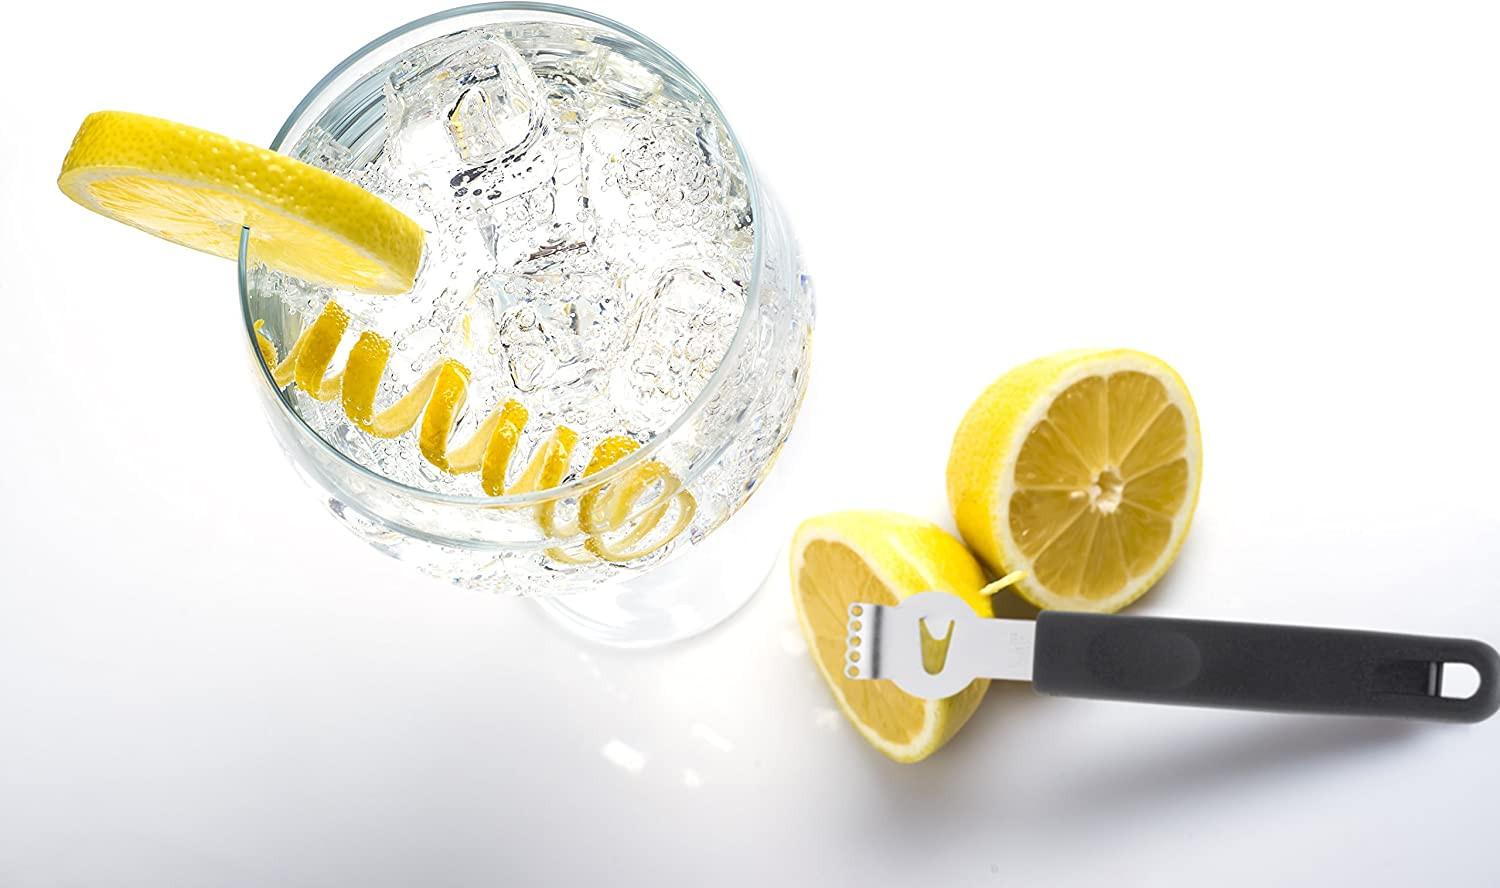 7.5-Inch HIC Harold Import Lime and Citrus Squeezer